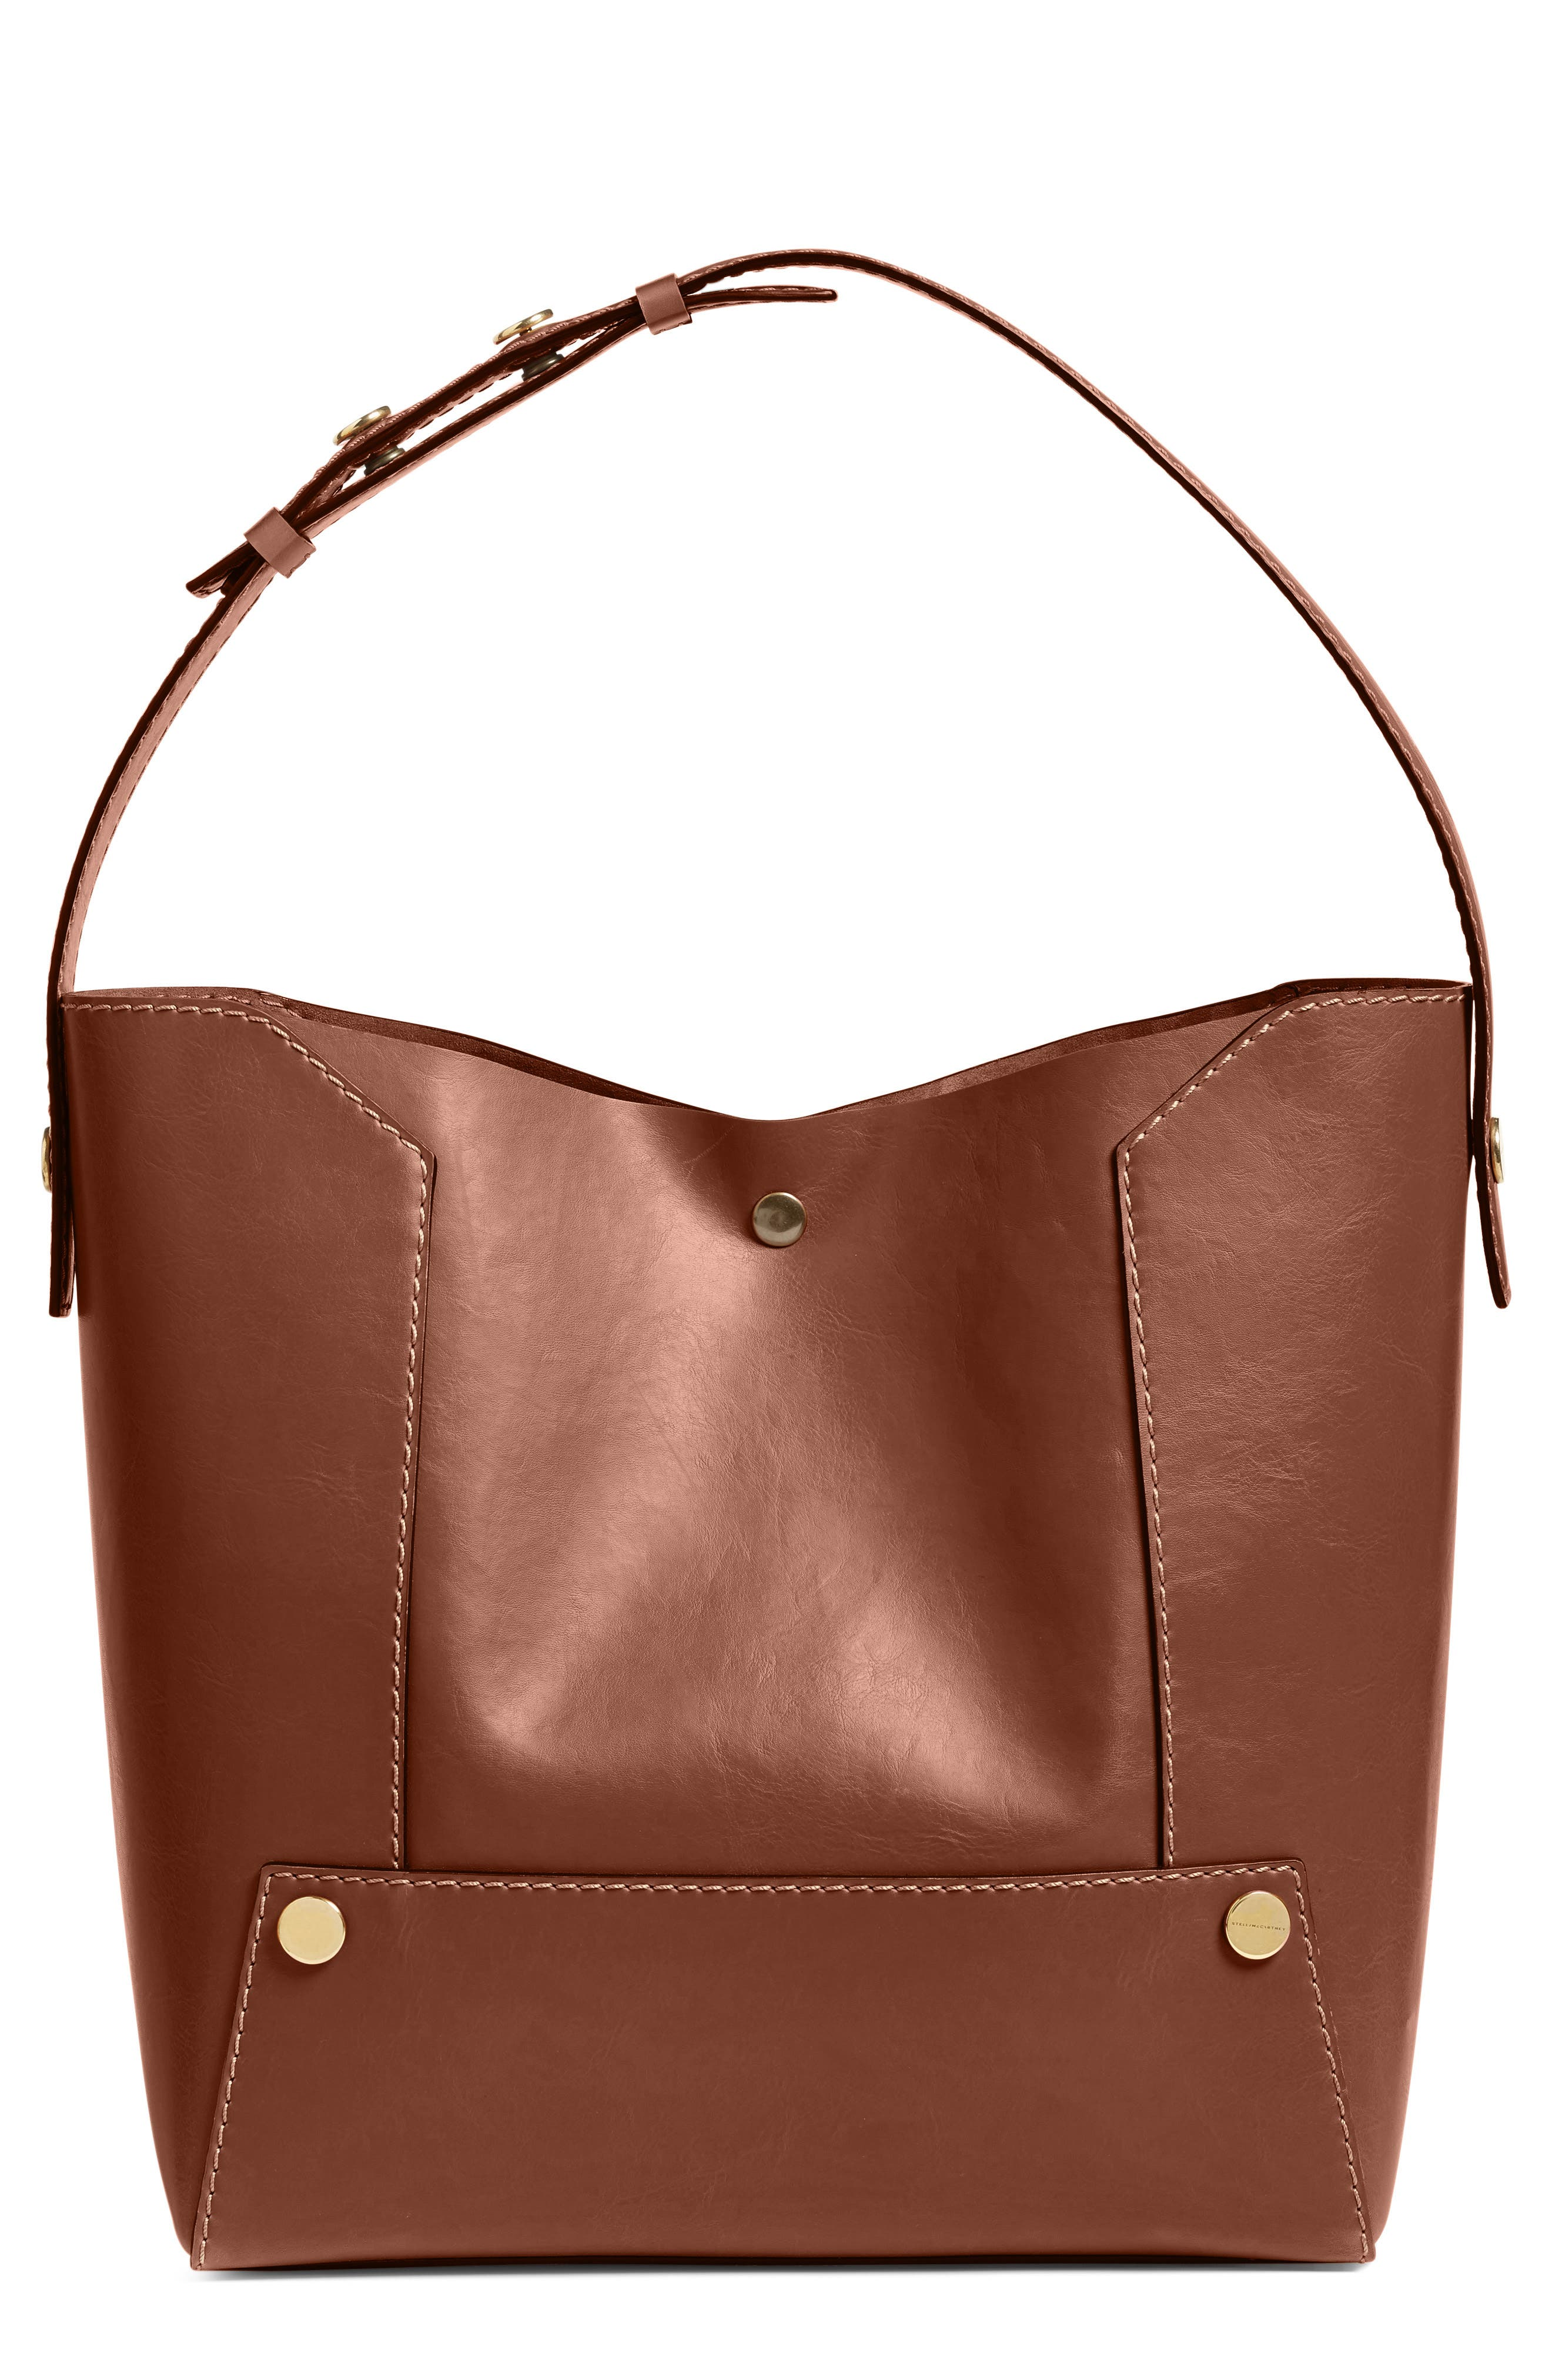 Popper Faux Leather Bucket Bag,                             Main thumbnail 1, color,                             217